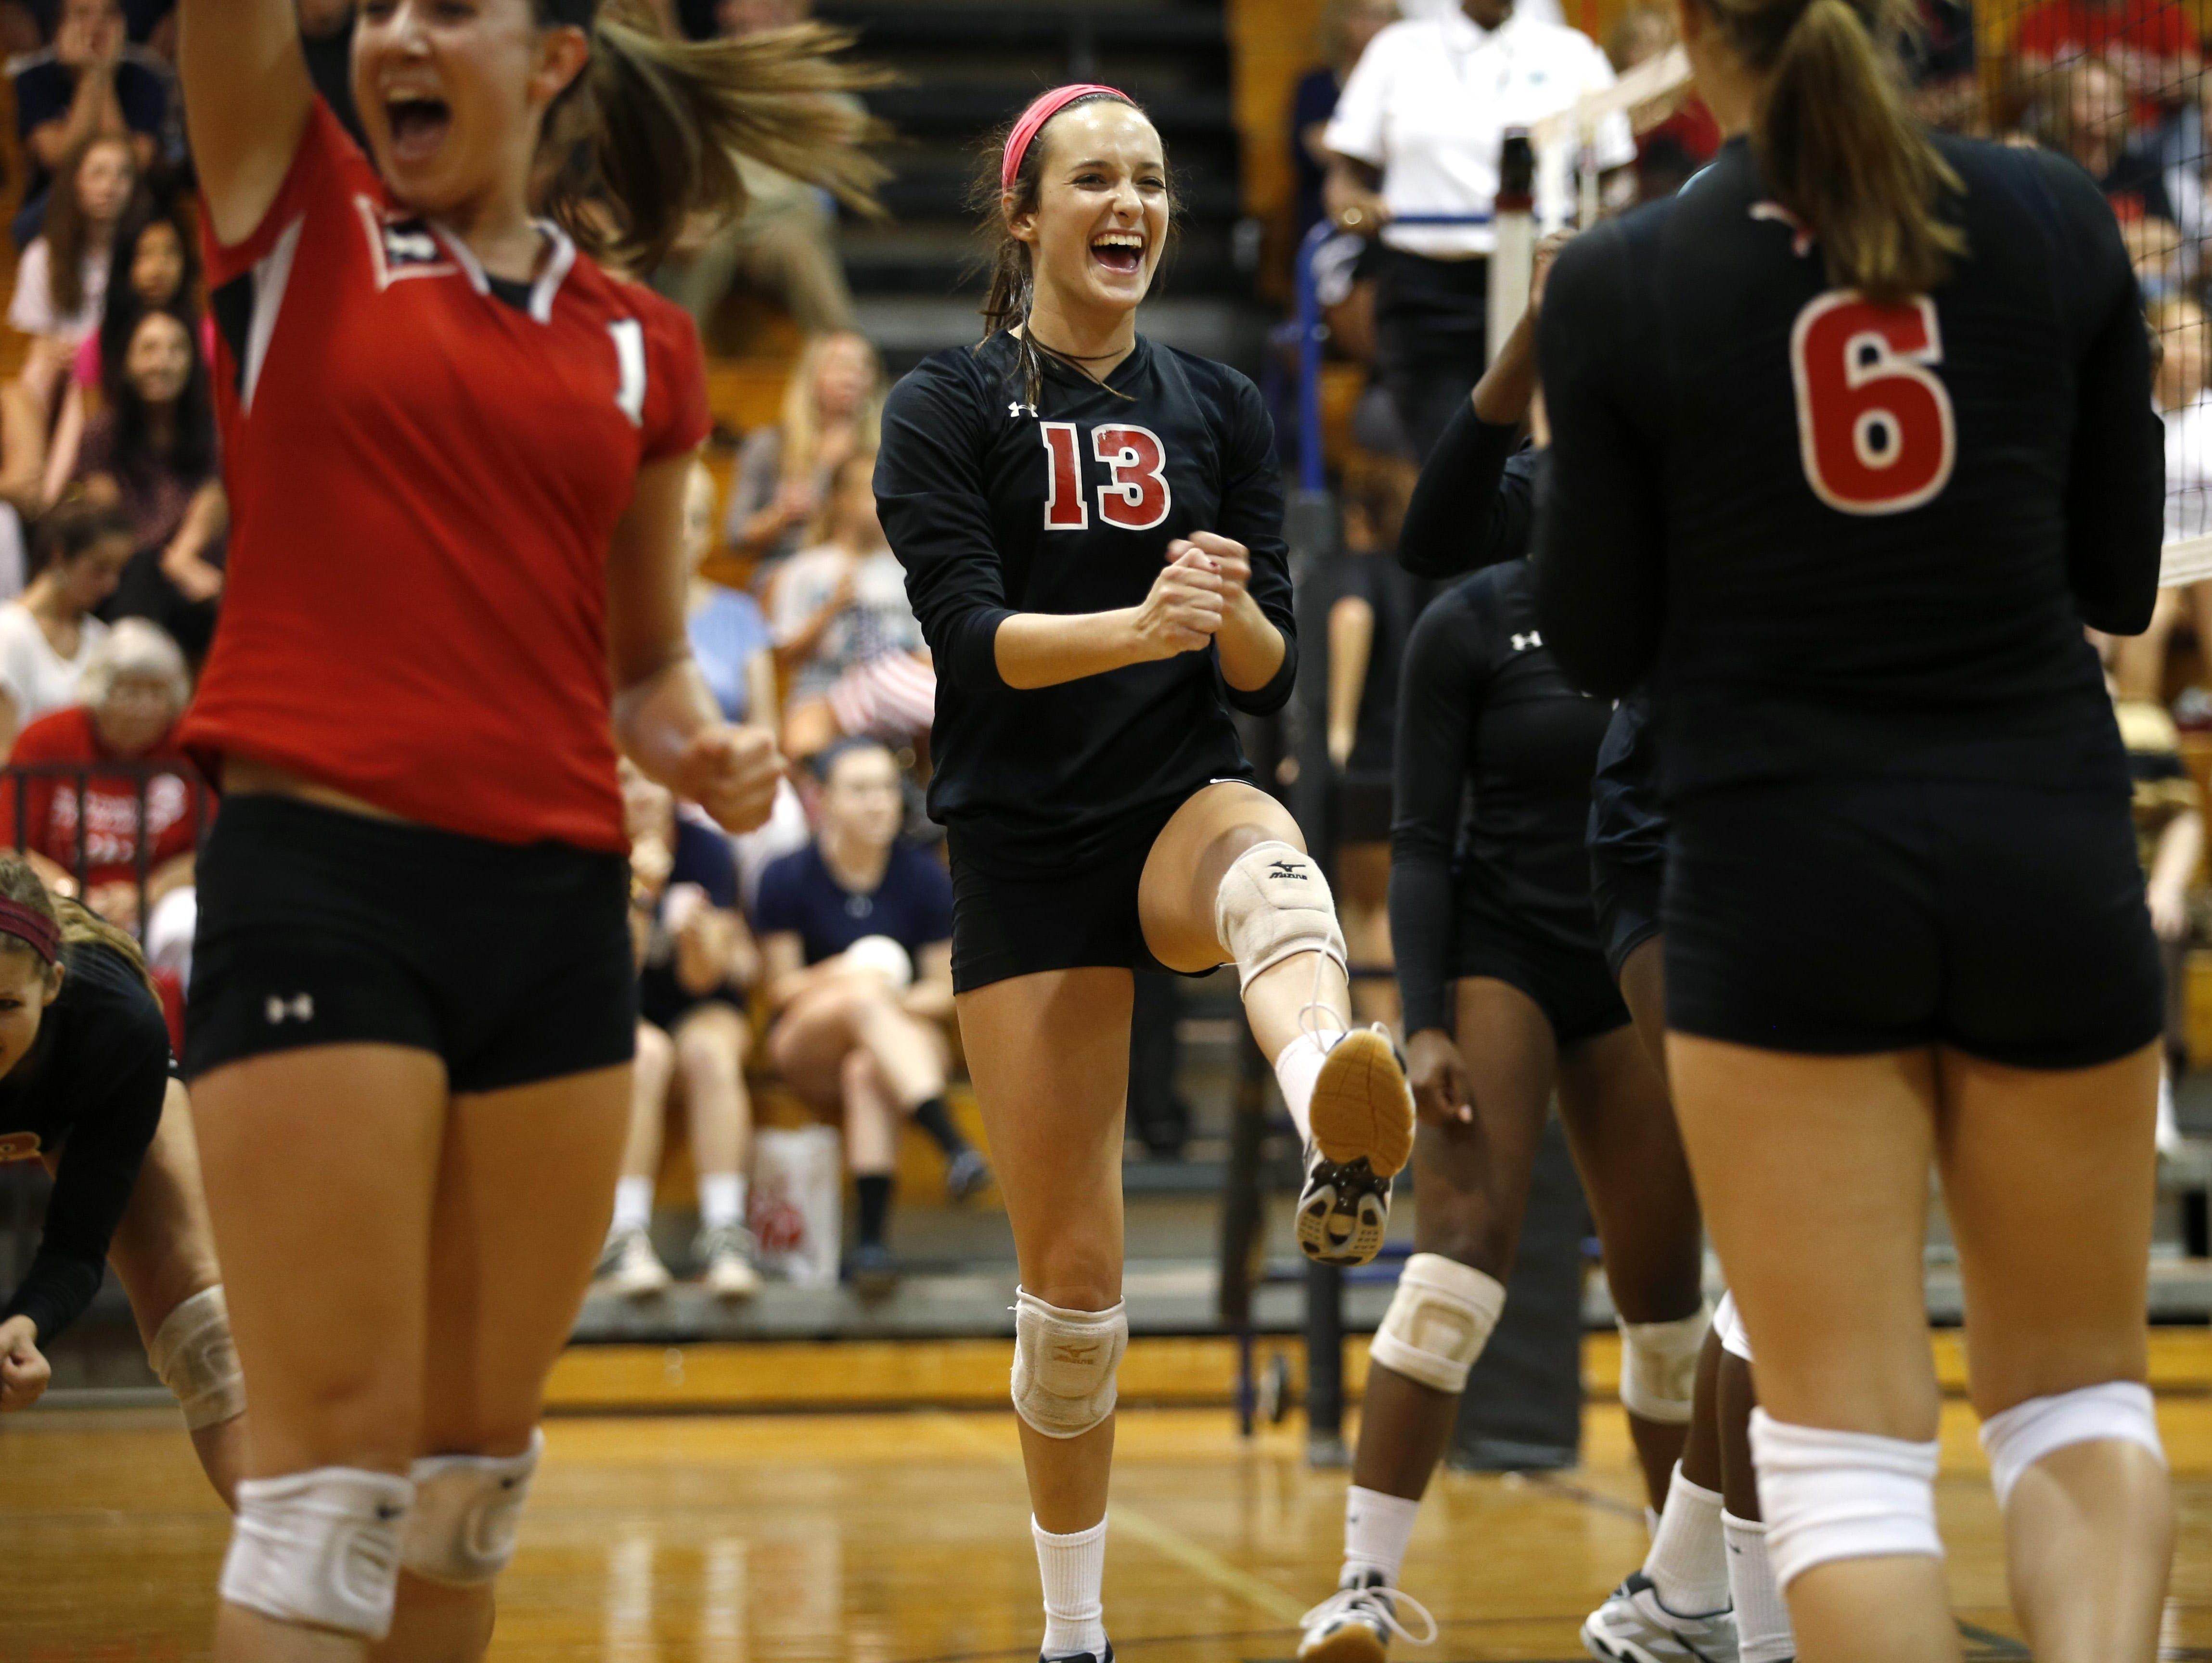 Leon senior setter Jaynie Mitchell, center, posted 115 assists, 30 digs and five aces as the Lions went 3-2 at Berkeley Prep's tournament in Tampa.